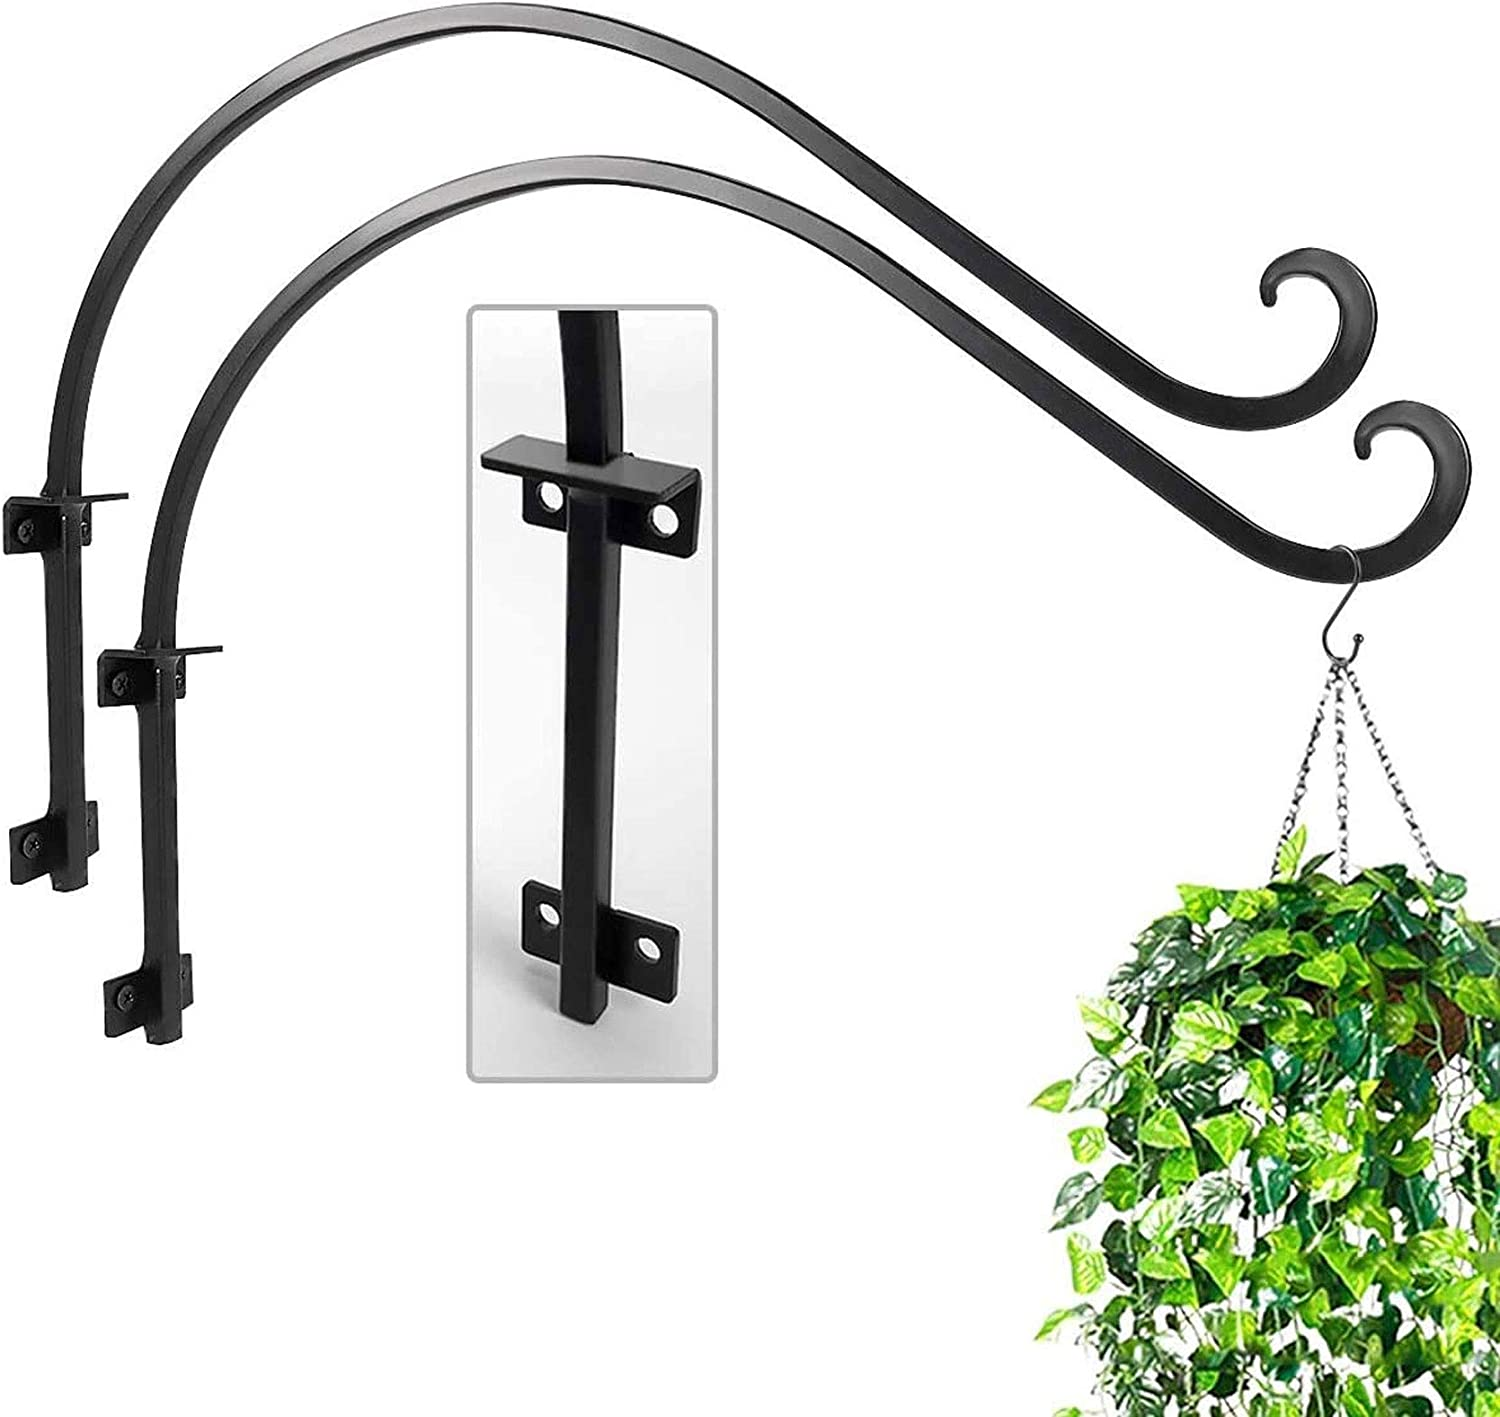 Handmade Forged Hanging Plant Bracket 16 inch Black Wall Plant Curved Hook Flower Pot Bird Feeder Wind Chimes Lantern Patio Lawn Garden for Shelf Shelves,Wall with Triangular Fixers More Stable -2 Pcs